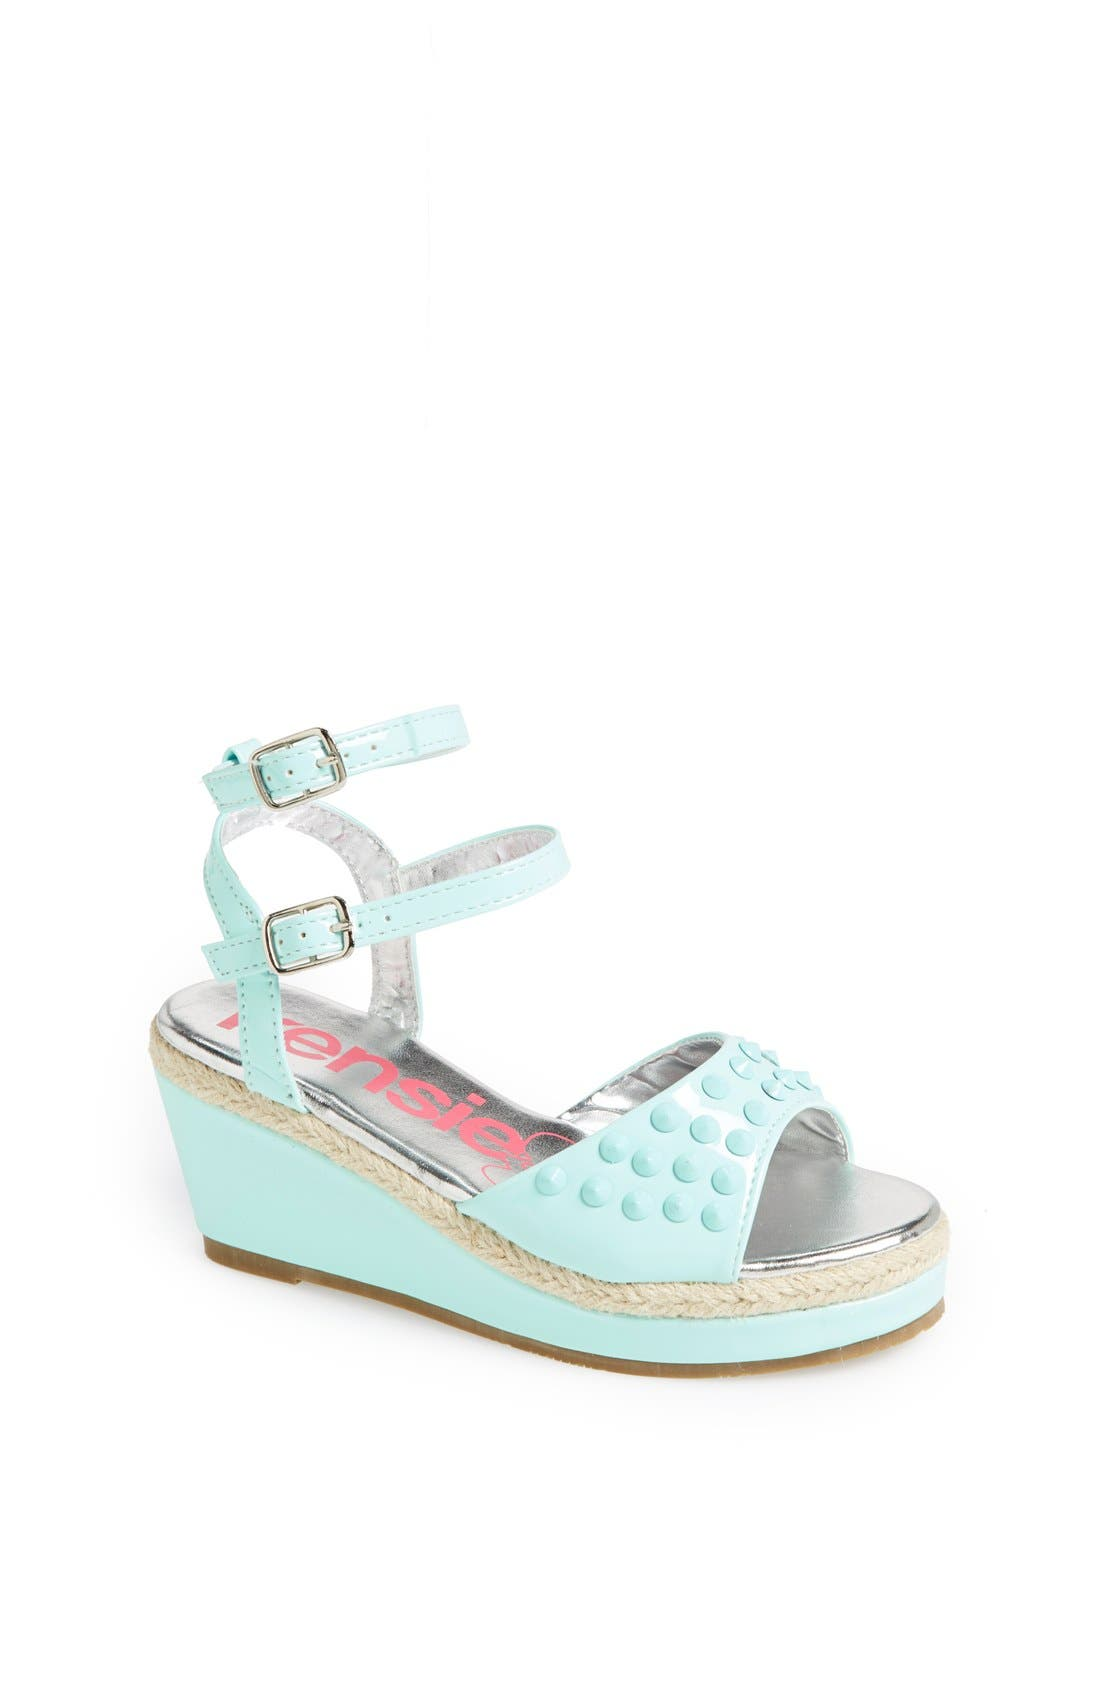 Main Image - kensie girl Studded Wedge Sandal (Toddler, Little Kid & Big Kid)